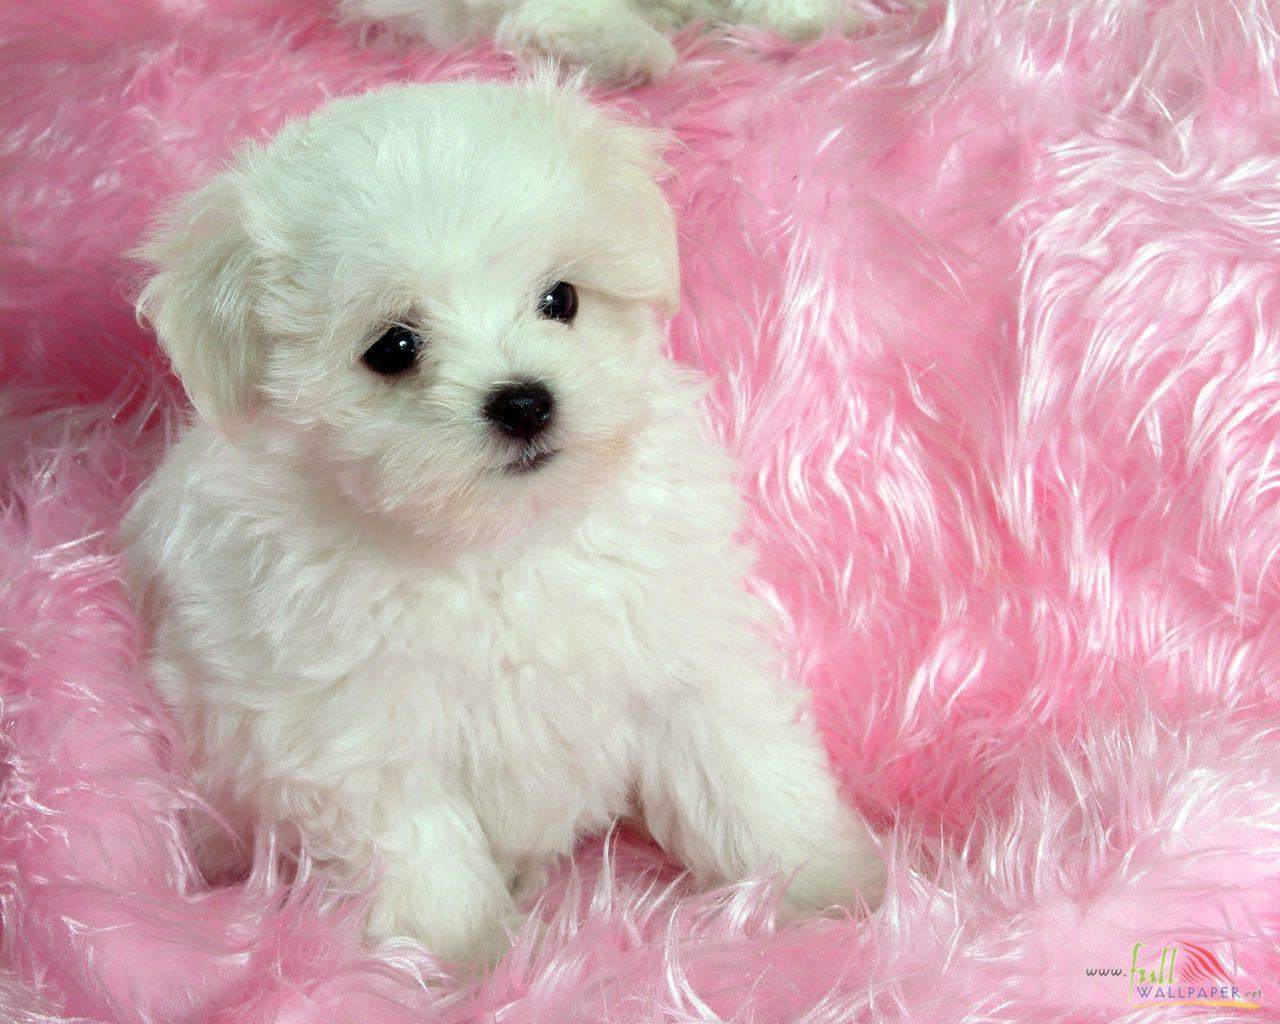 Free Download Baby Dog Pictures Images Amp Pictures Becuo 1280x1024 For Your Desktop Mobile Tablet Explore 72 Baby Dog Wallpaper Cute Puppies Wallpapers Cute Cats And Dogs Wallpaper Cute